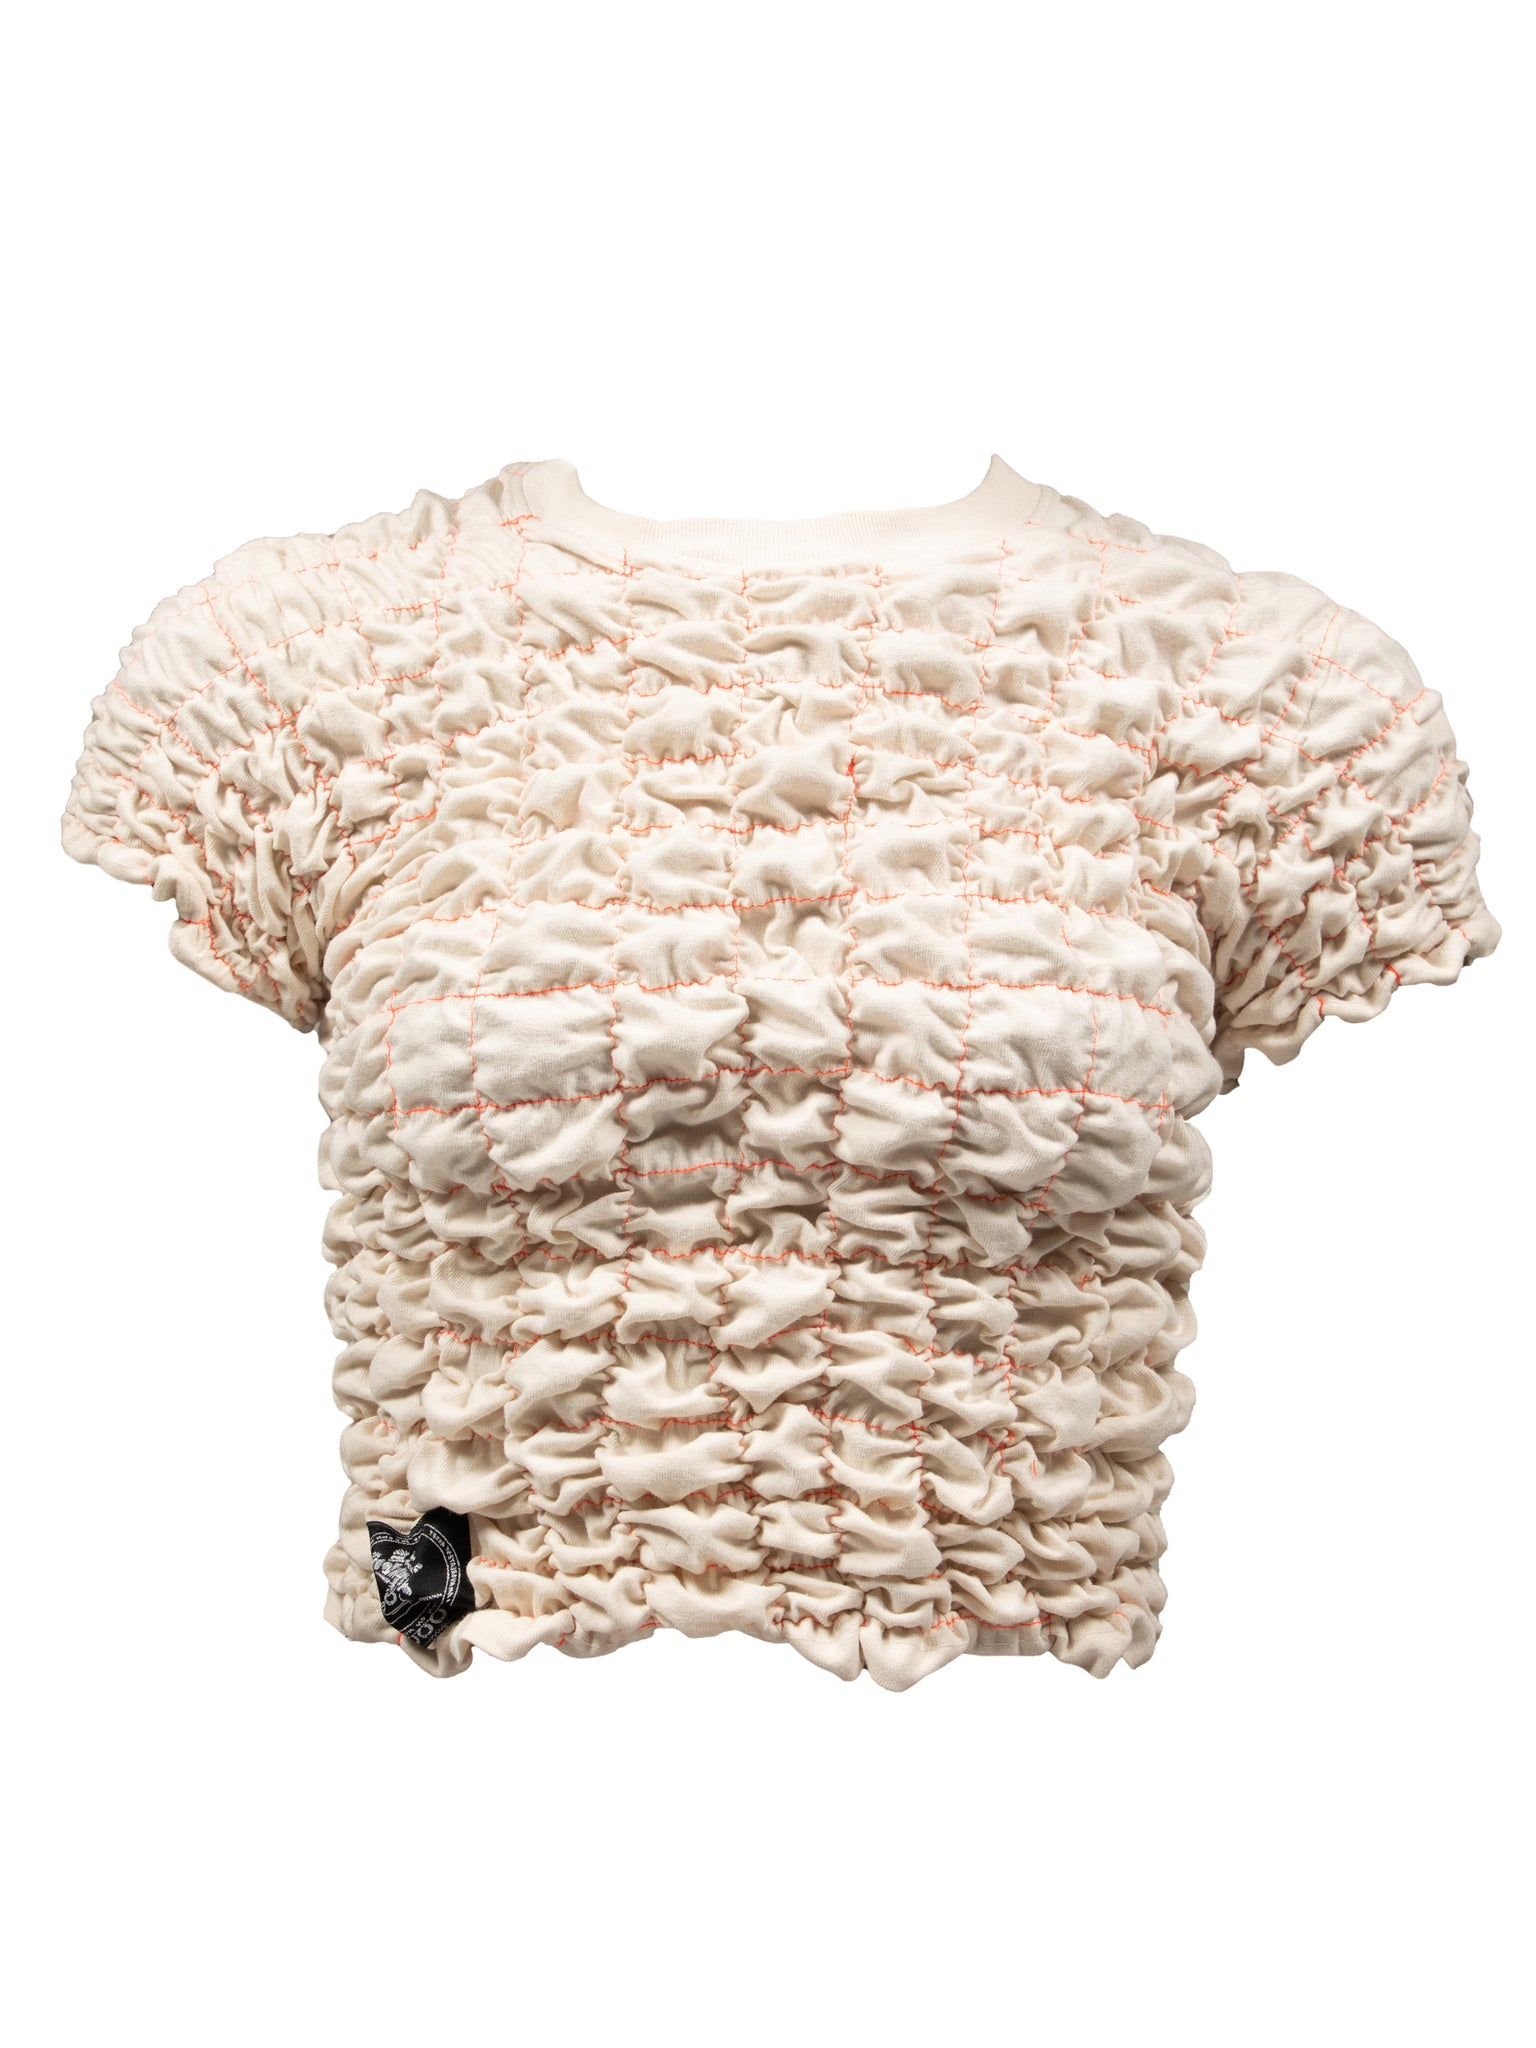 Scrunchie top - Beige w/ Coral colored thread